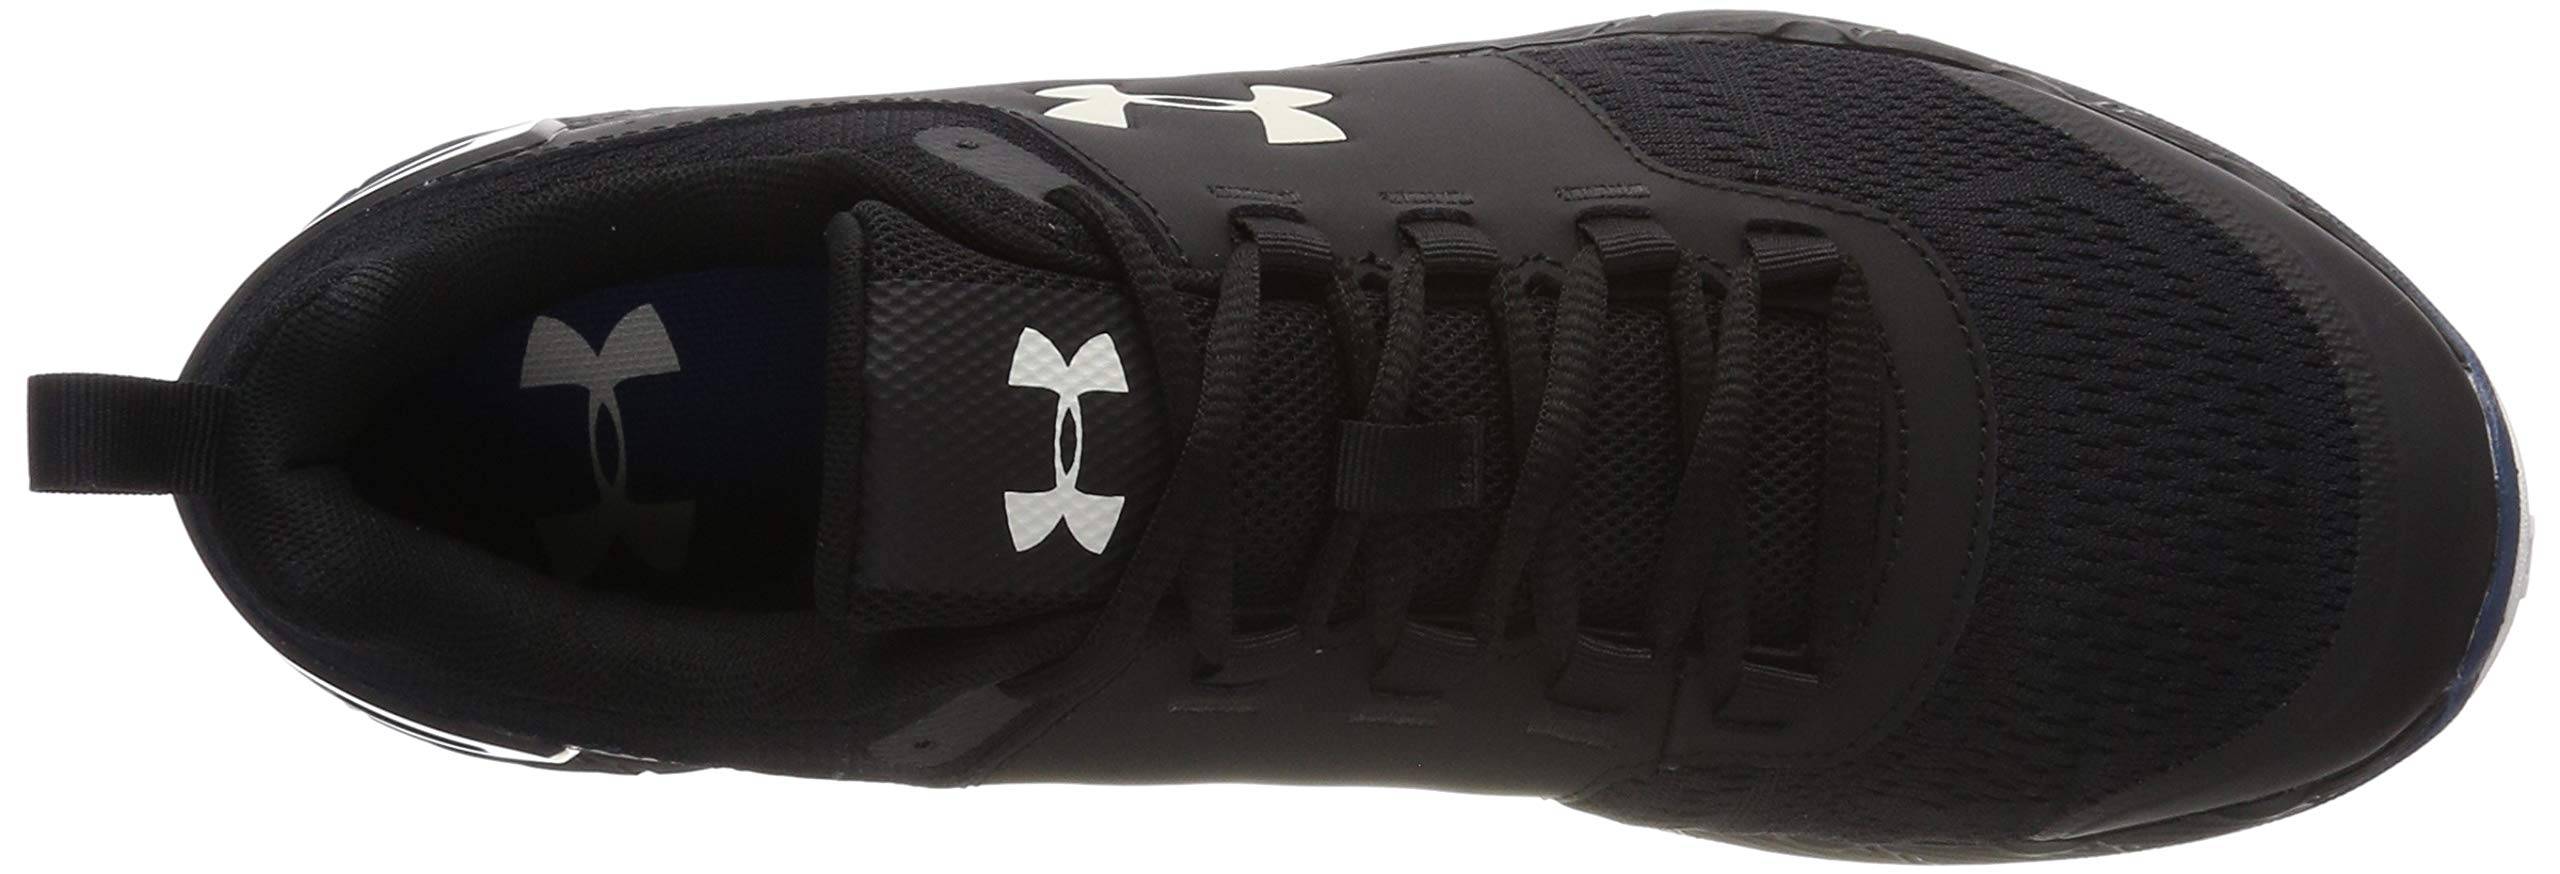 Under Armour Men's Commit TR EX Sneaker, Black (008)/Petrol Blue, 7.5 M US by Under Armour (Image #6)